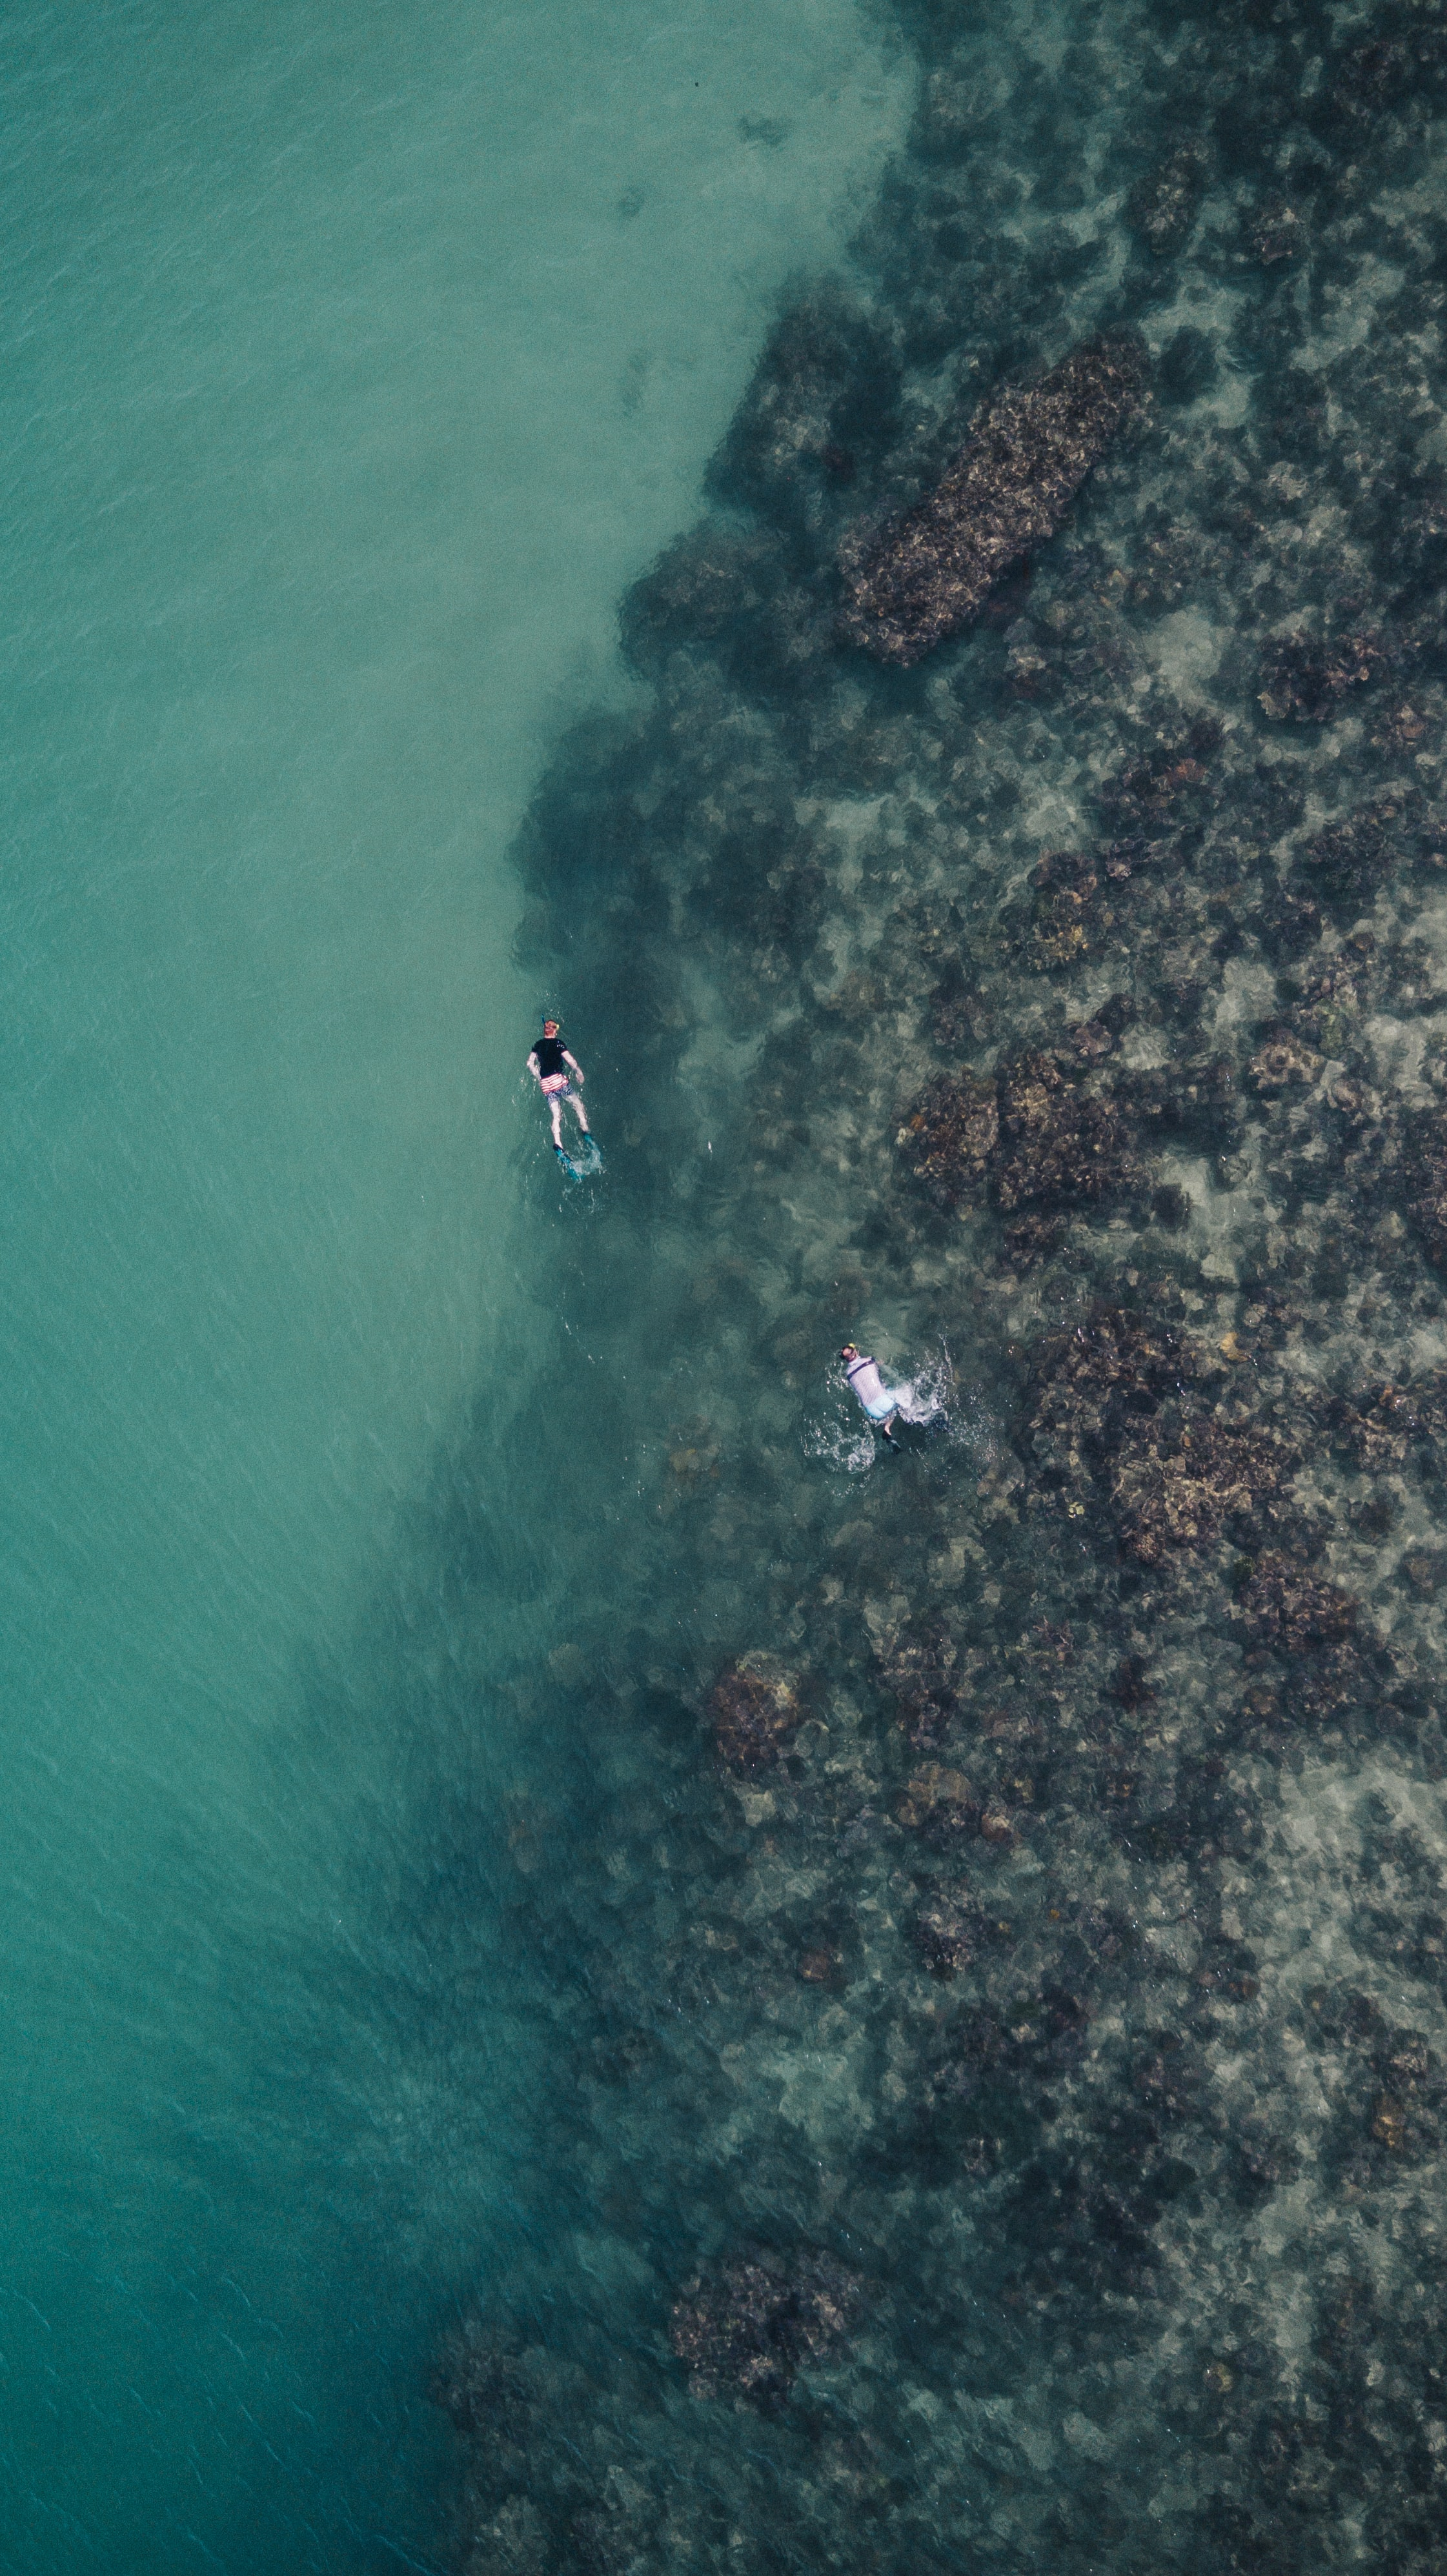 Drone aerial view of people snorkeling at the coral reef in Indonesia